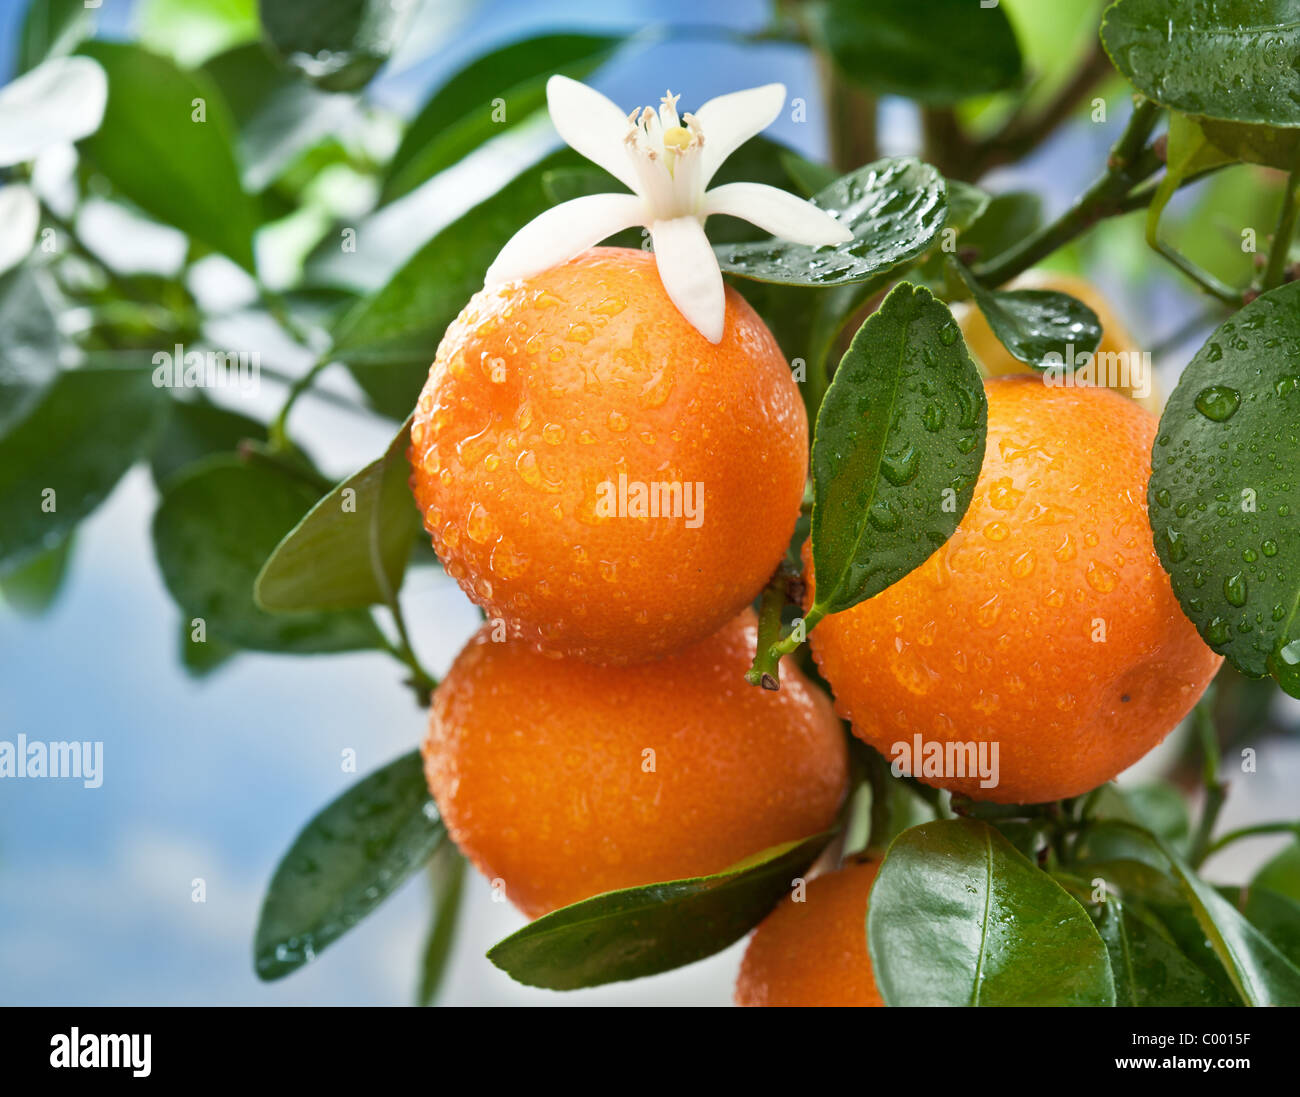 Ripe tangerines on a tree branch. Blue sky on the background. - Stock Image